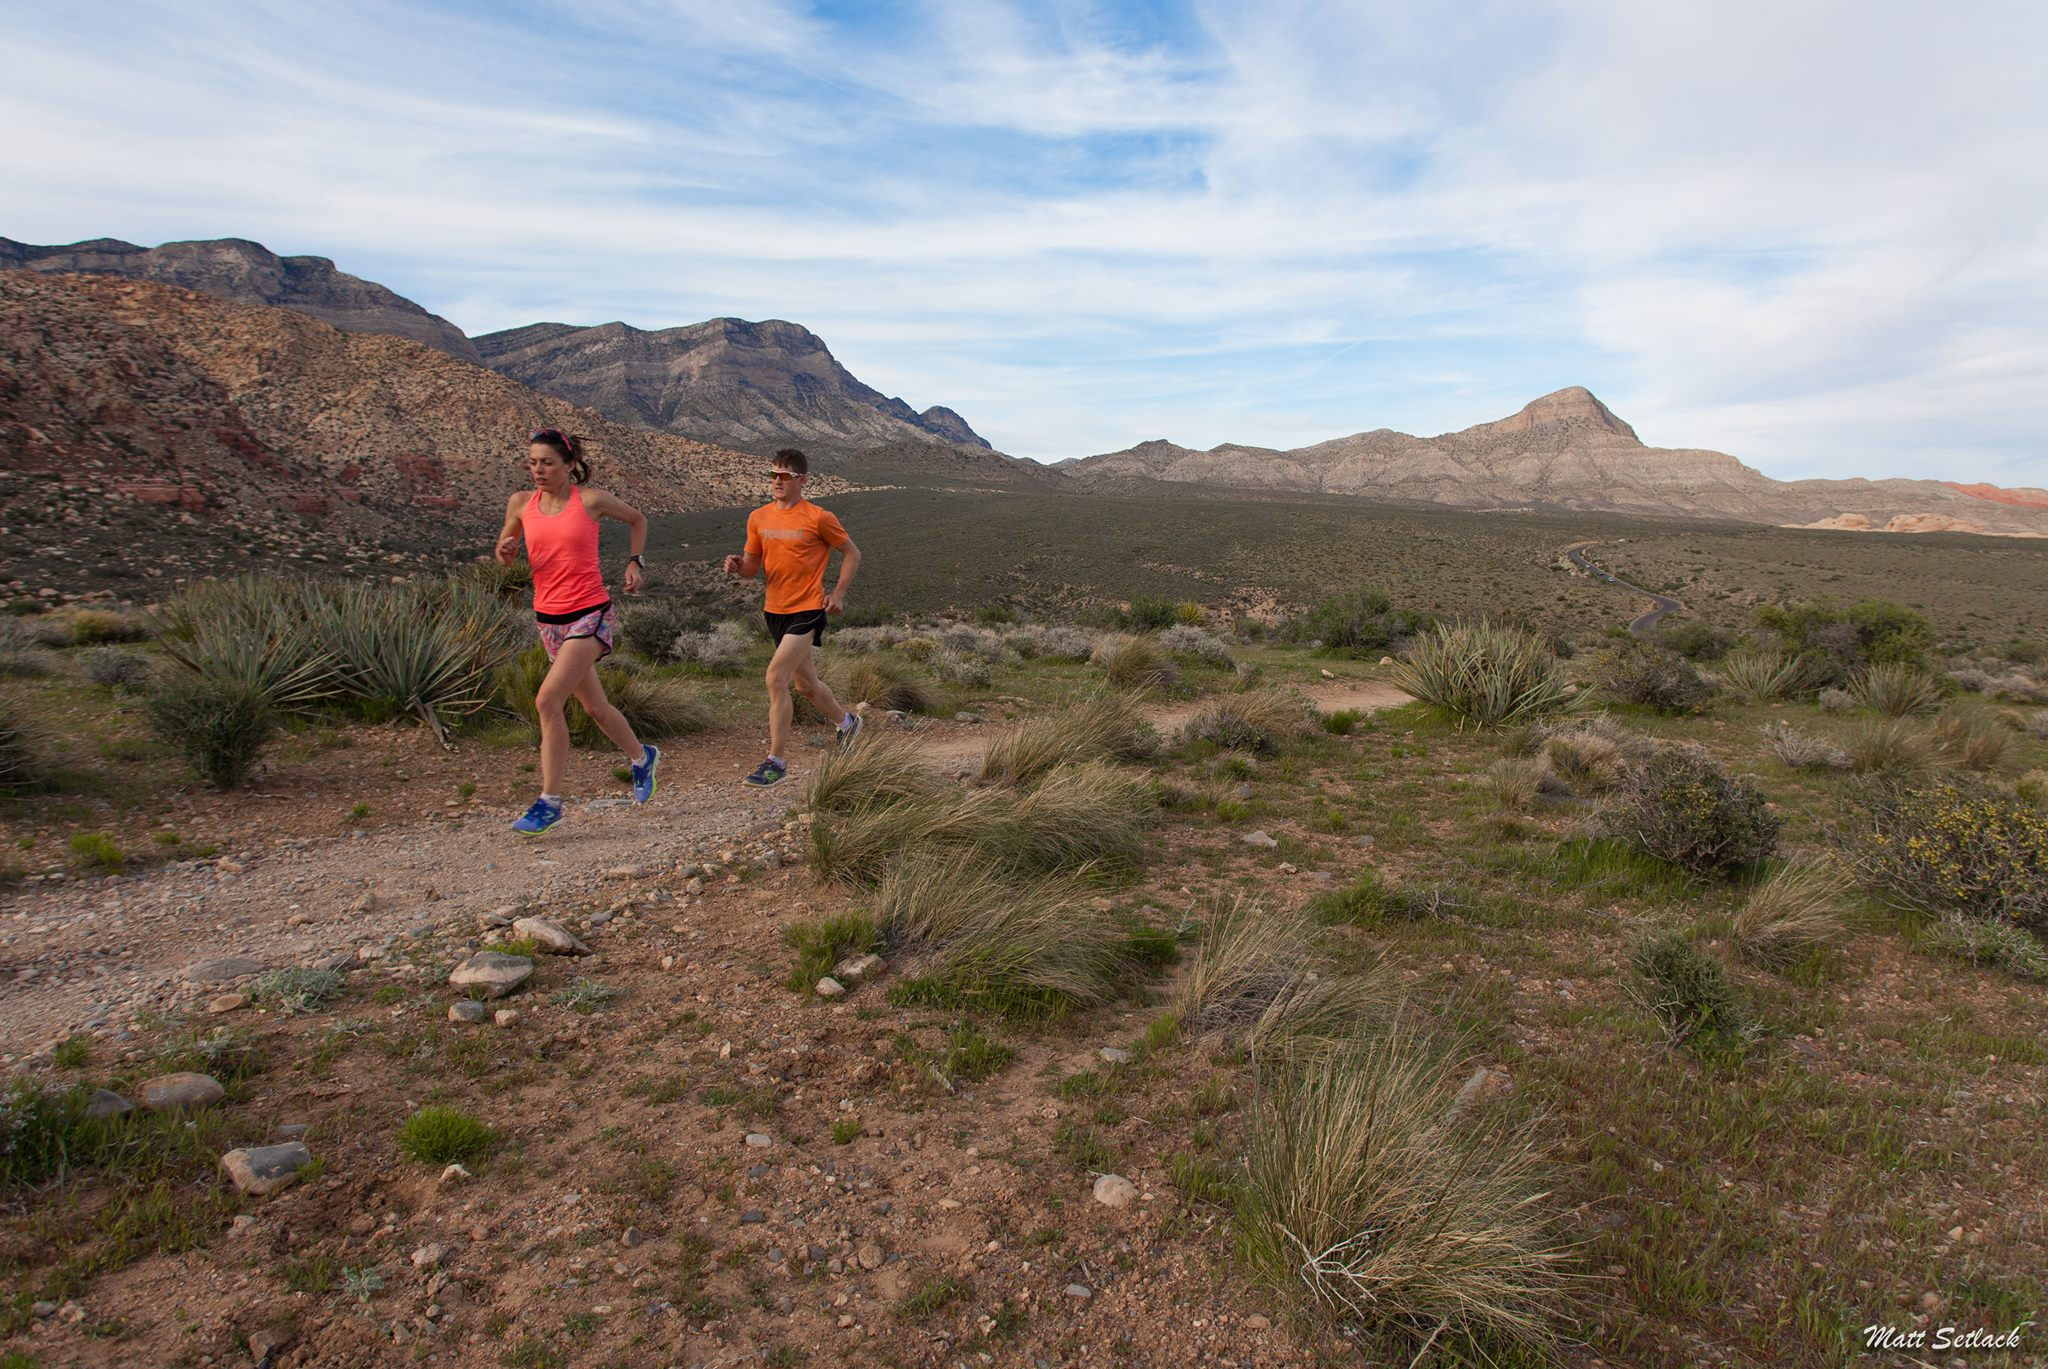 Emily and Matt trail running in the Red Rock National Conservation area in Nevada, USA.